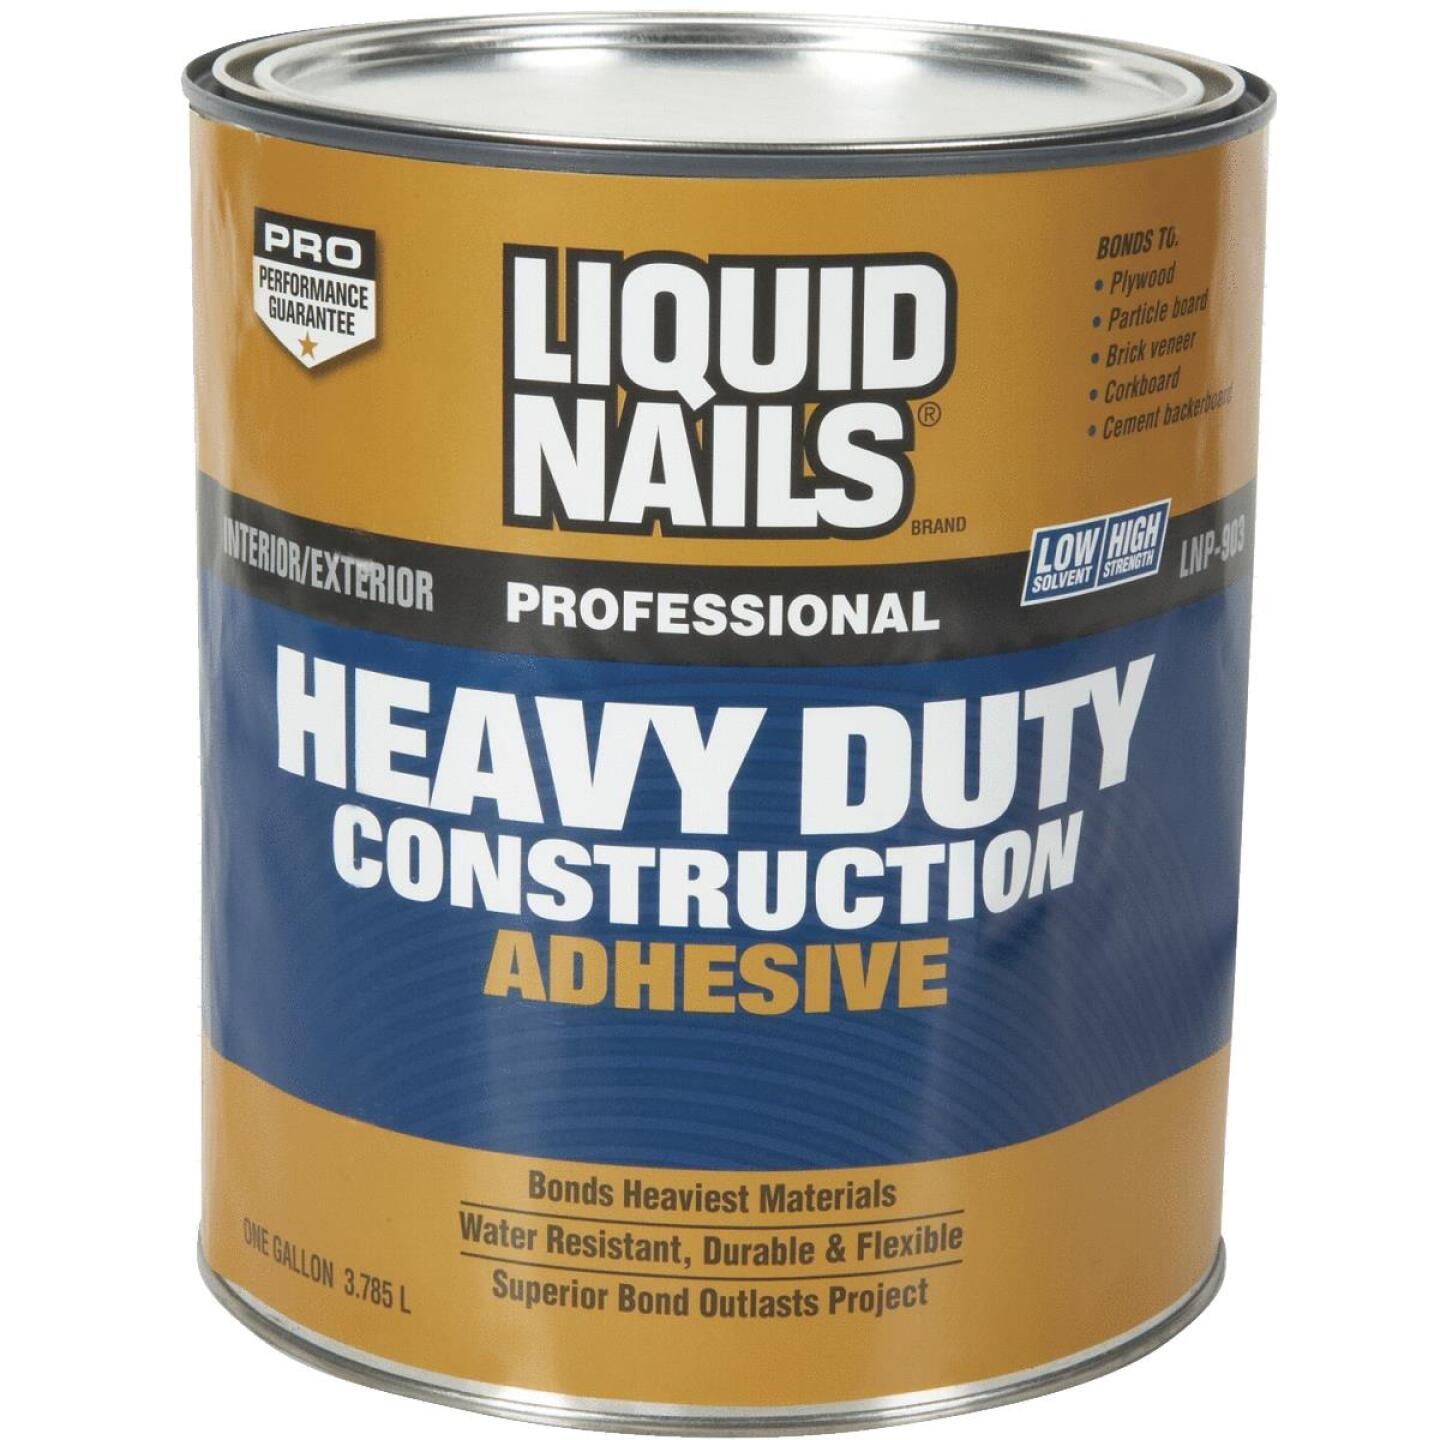 Liquid Nails 1 Gal. Professional Heavy Duty VOC Construction Adhesive Image 1